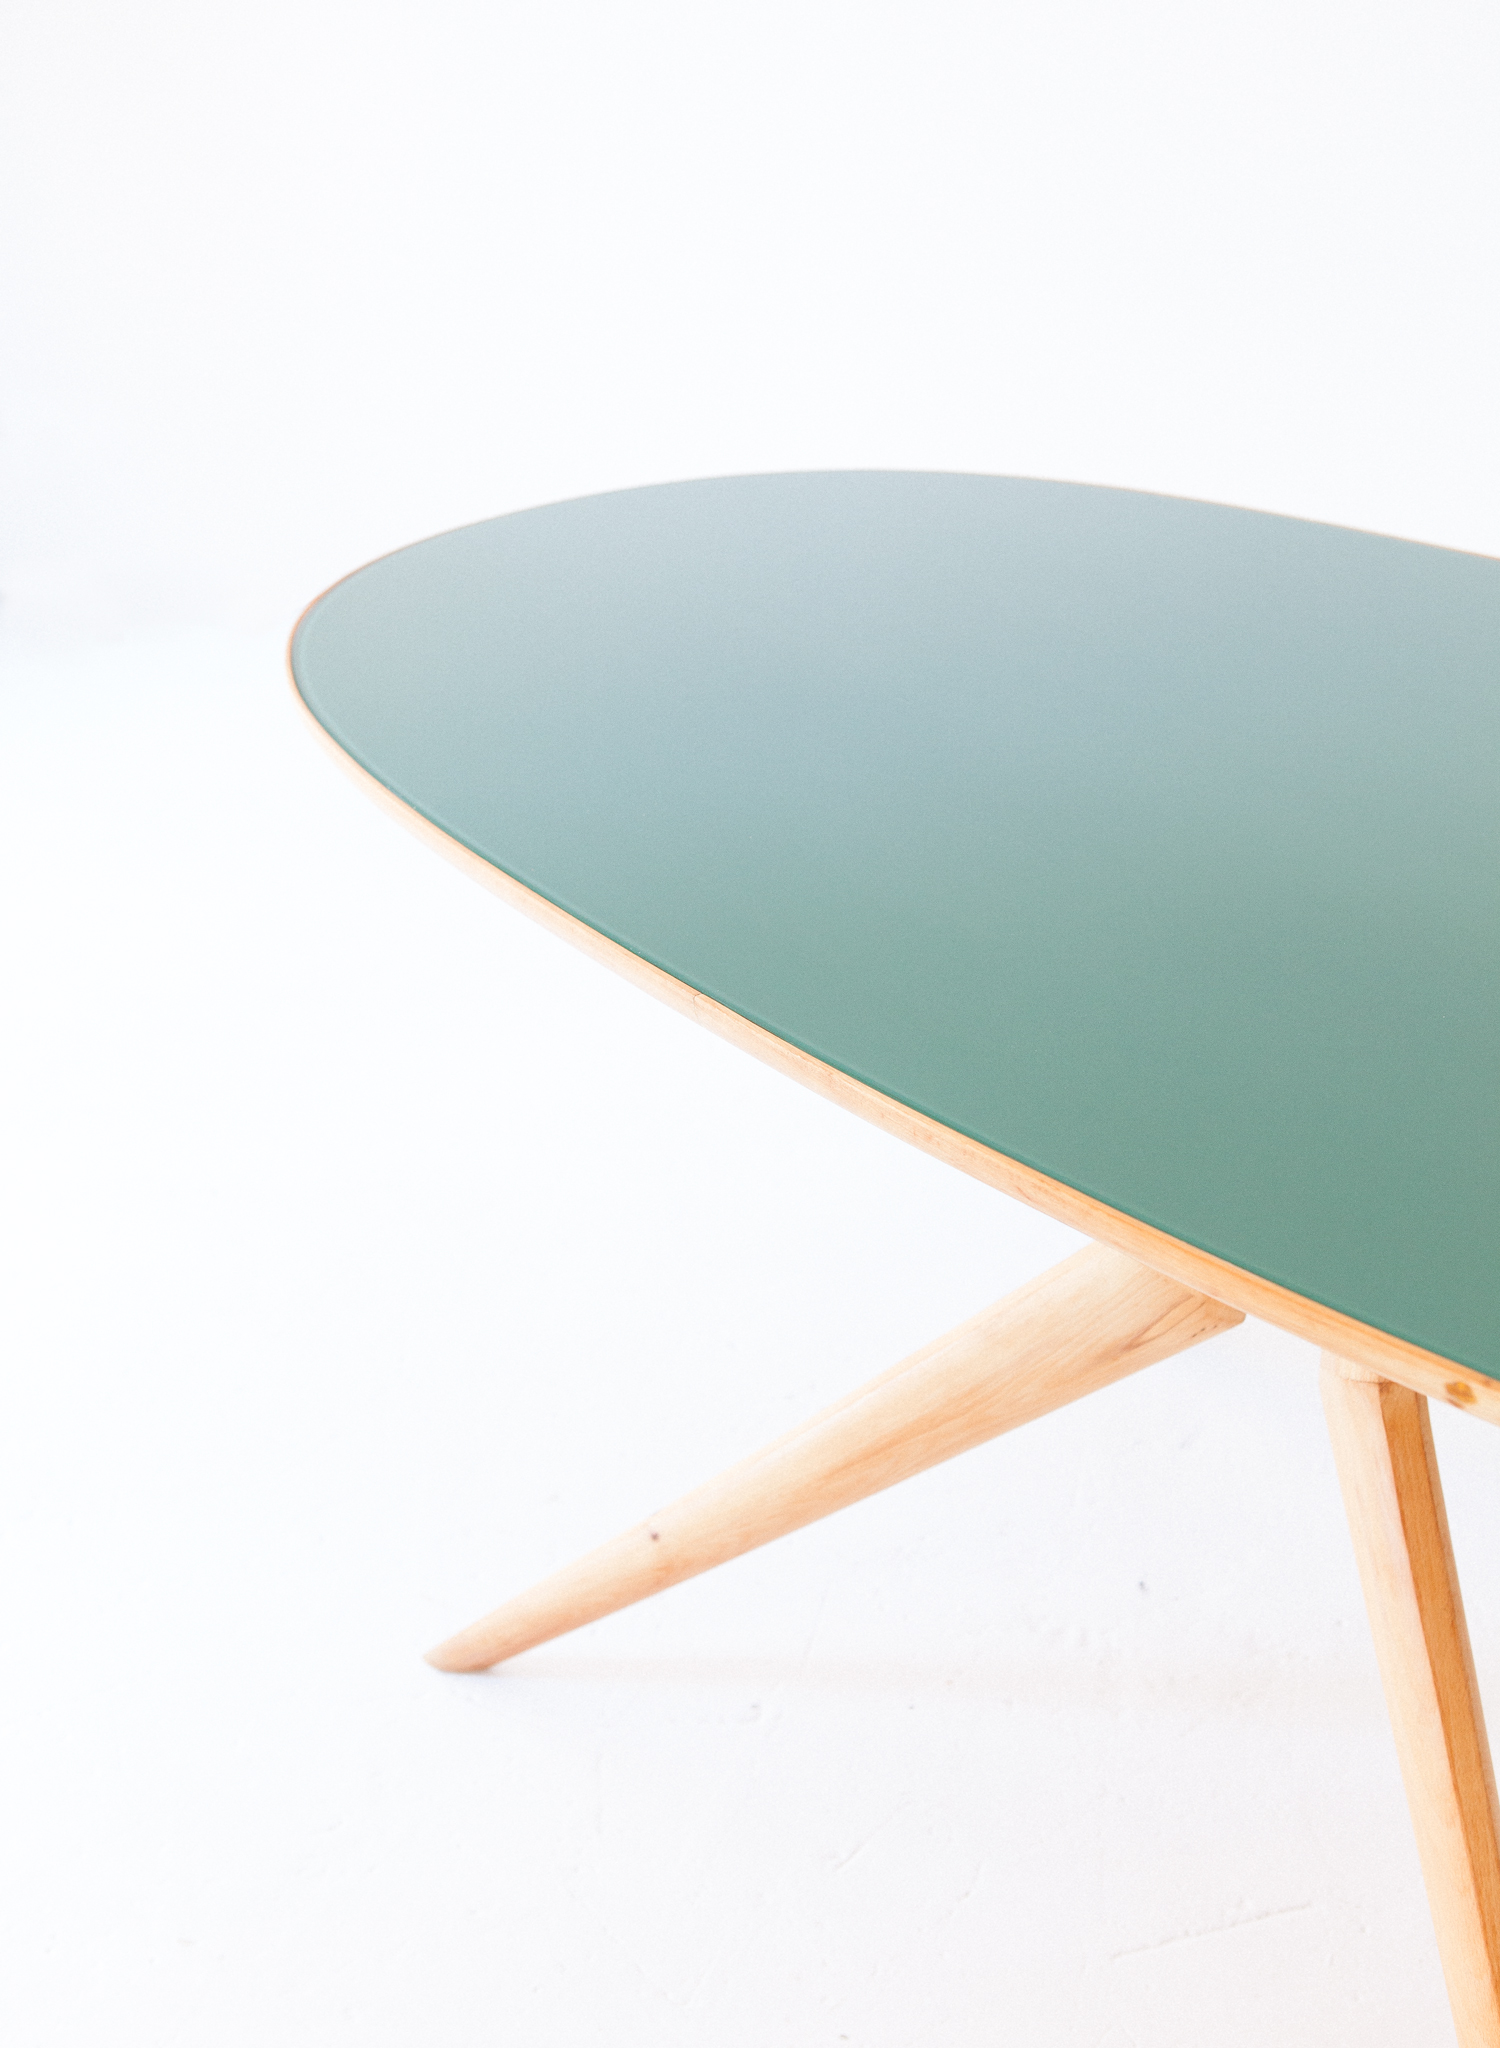 Elliptical-beech-light-green-dining-table-4